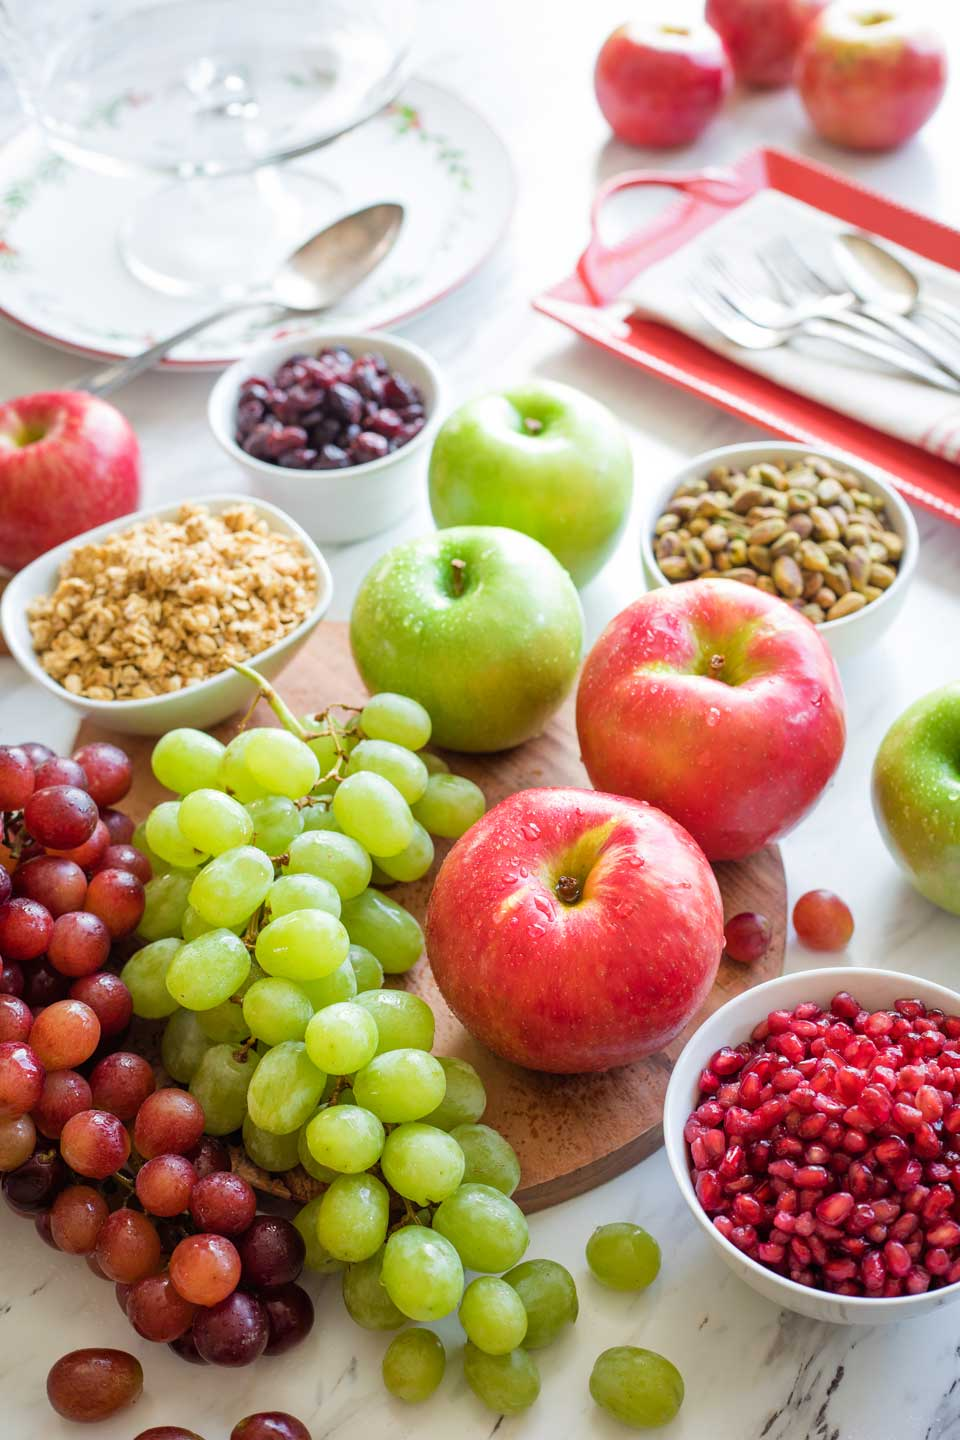 Ingredients like whole apples, bunches of grapes, and bowls of cranberries, granola, pistachios, and pomegranate arils.